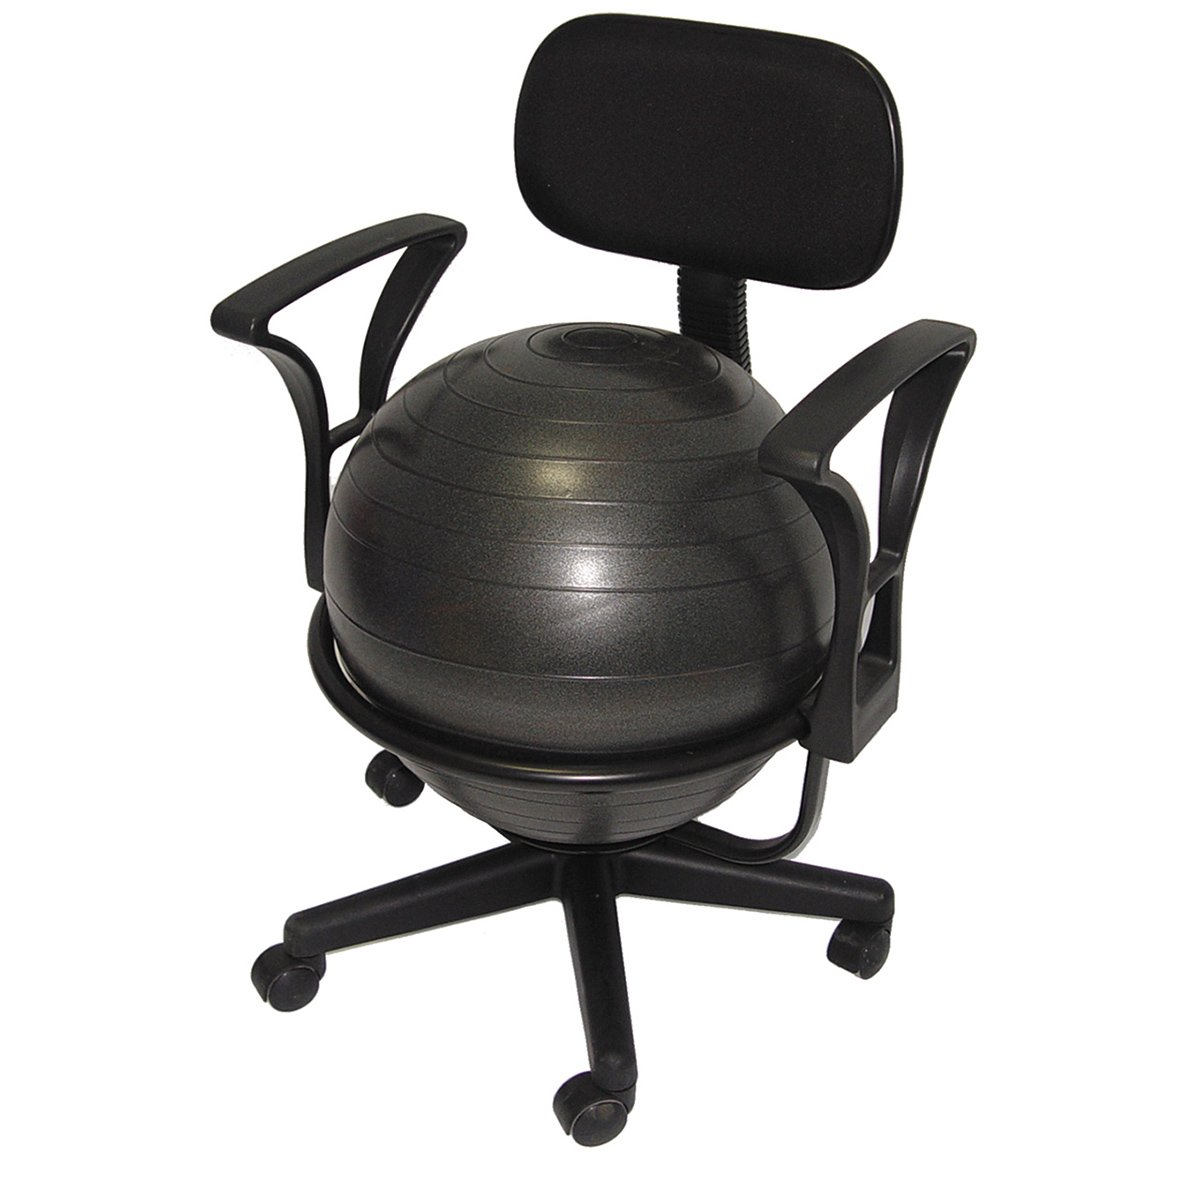 Deluxe Fitness Ball Chair inブラック   B000T9EHU6